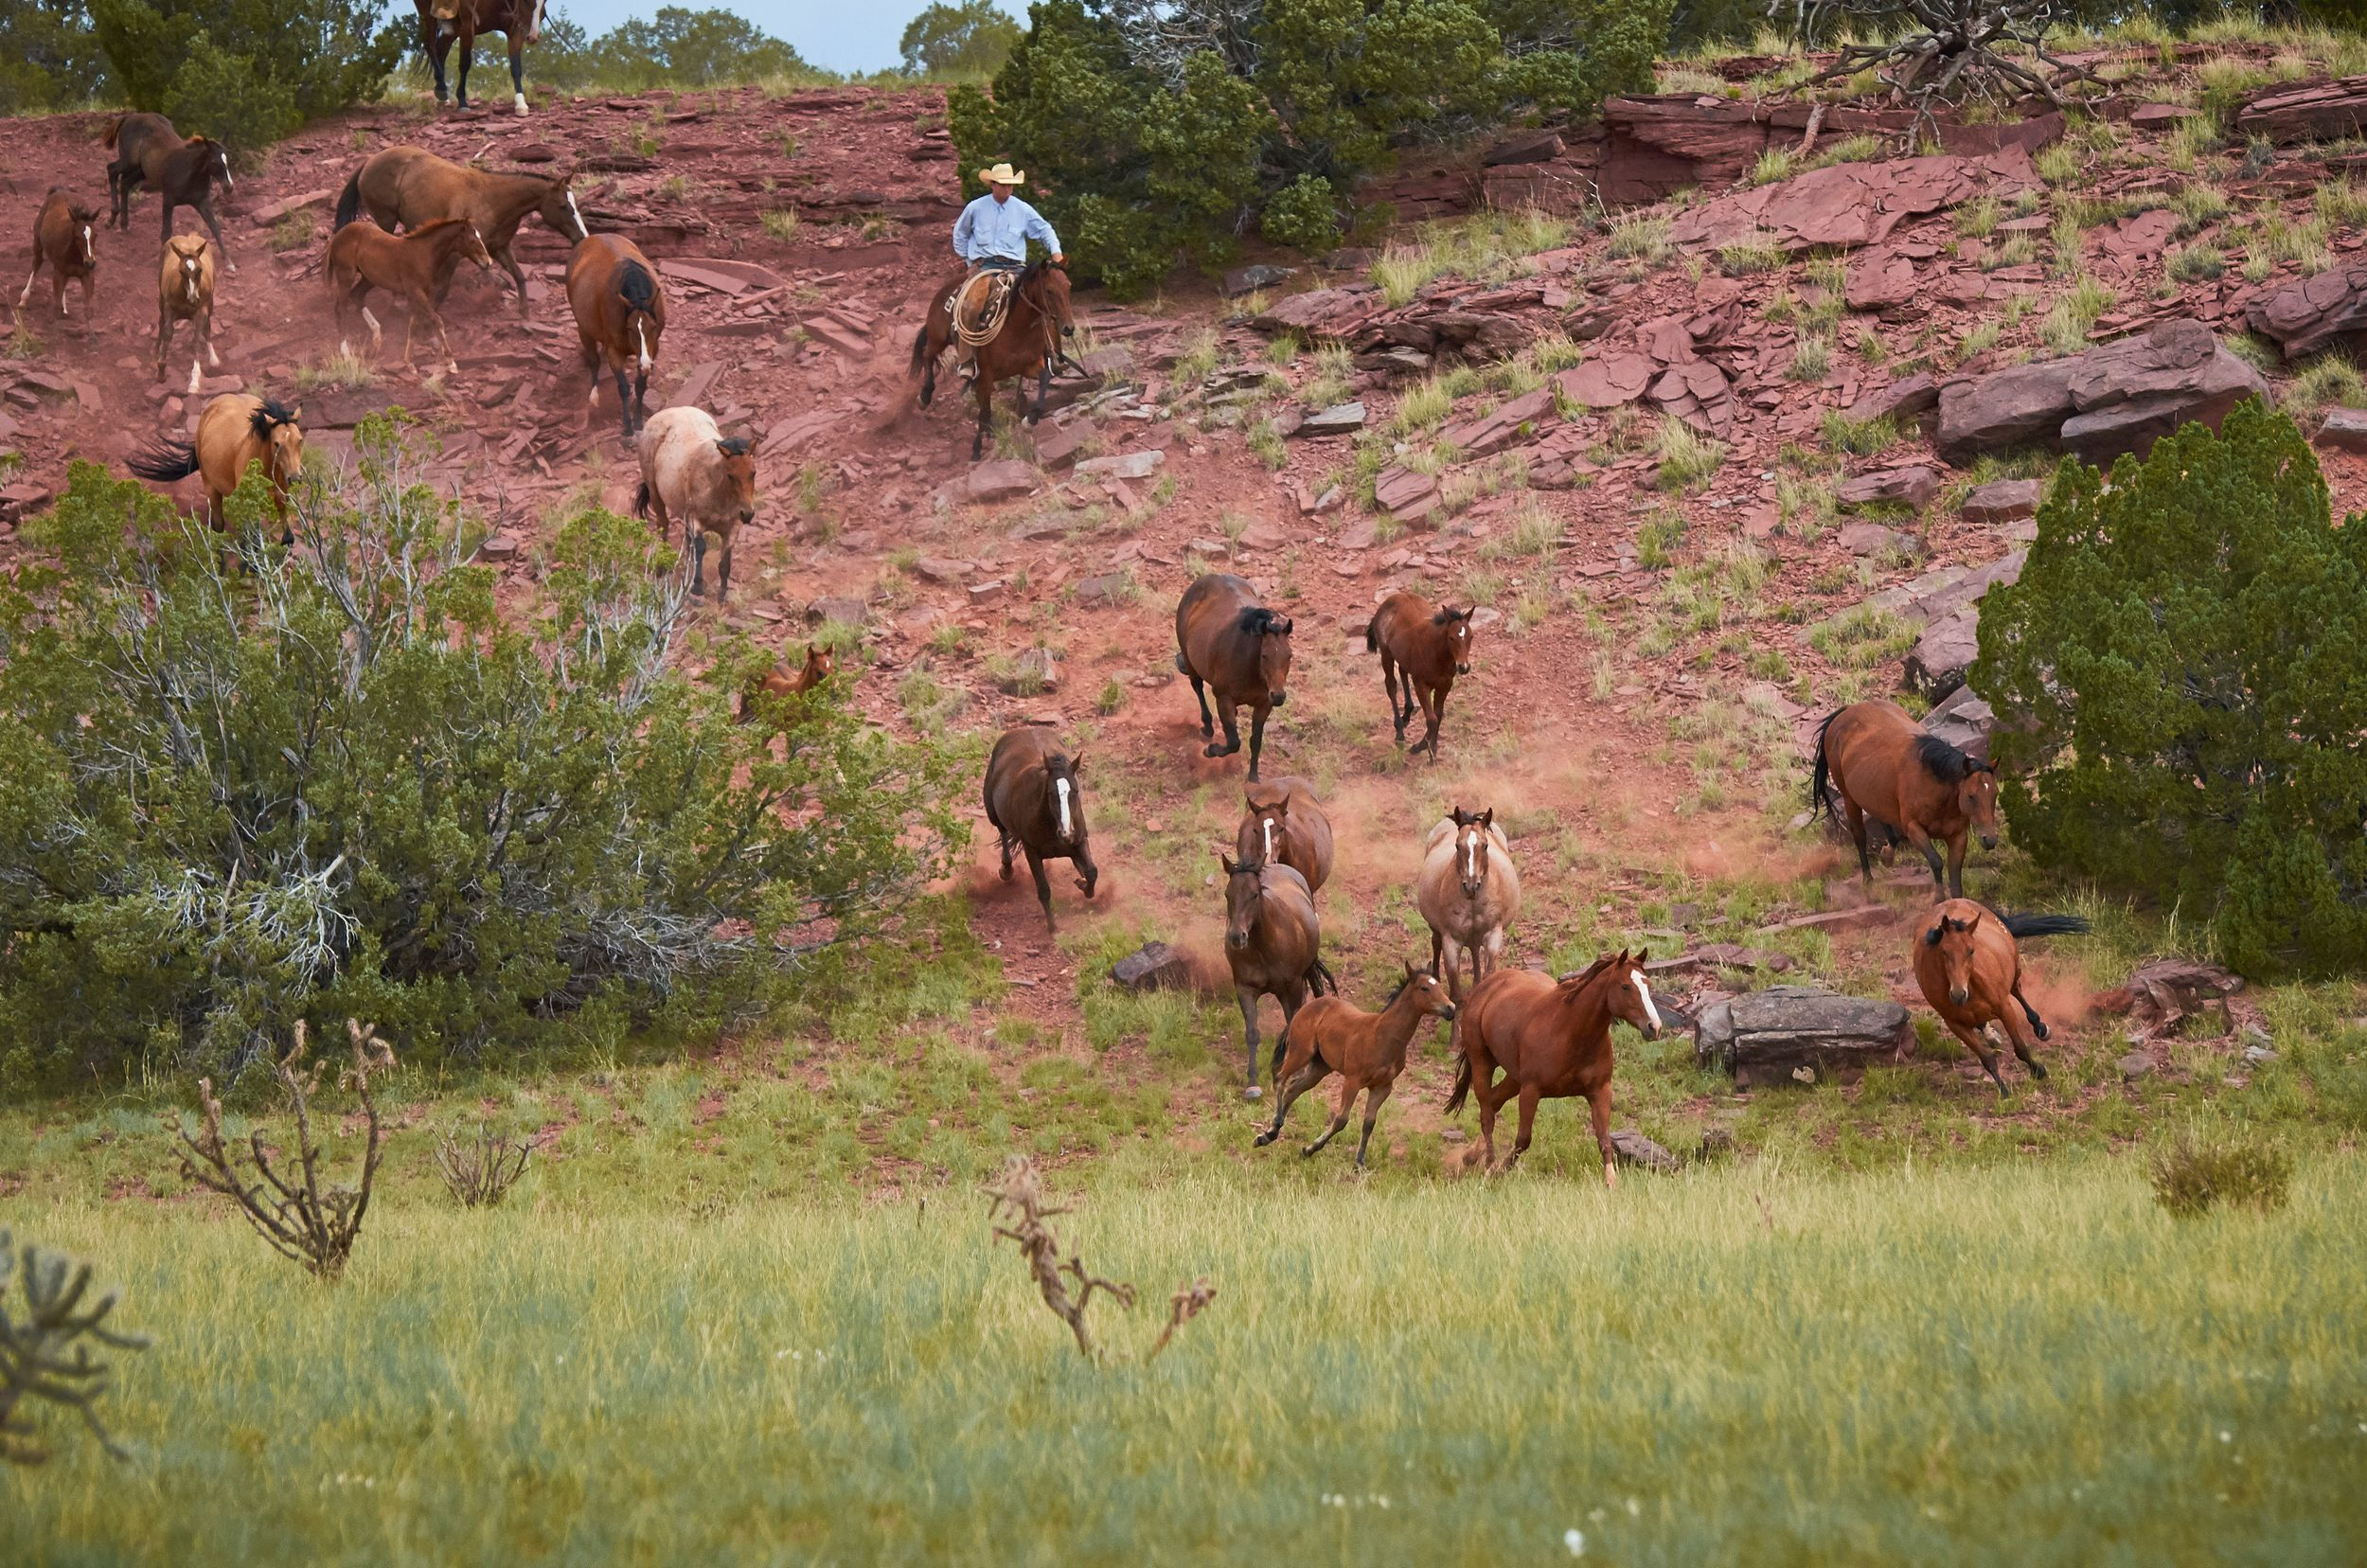 Quarter Horse mares and foals running down a cliff